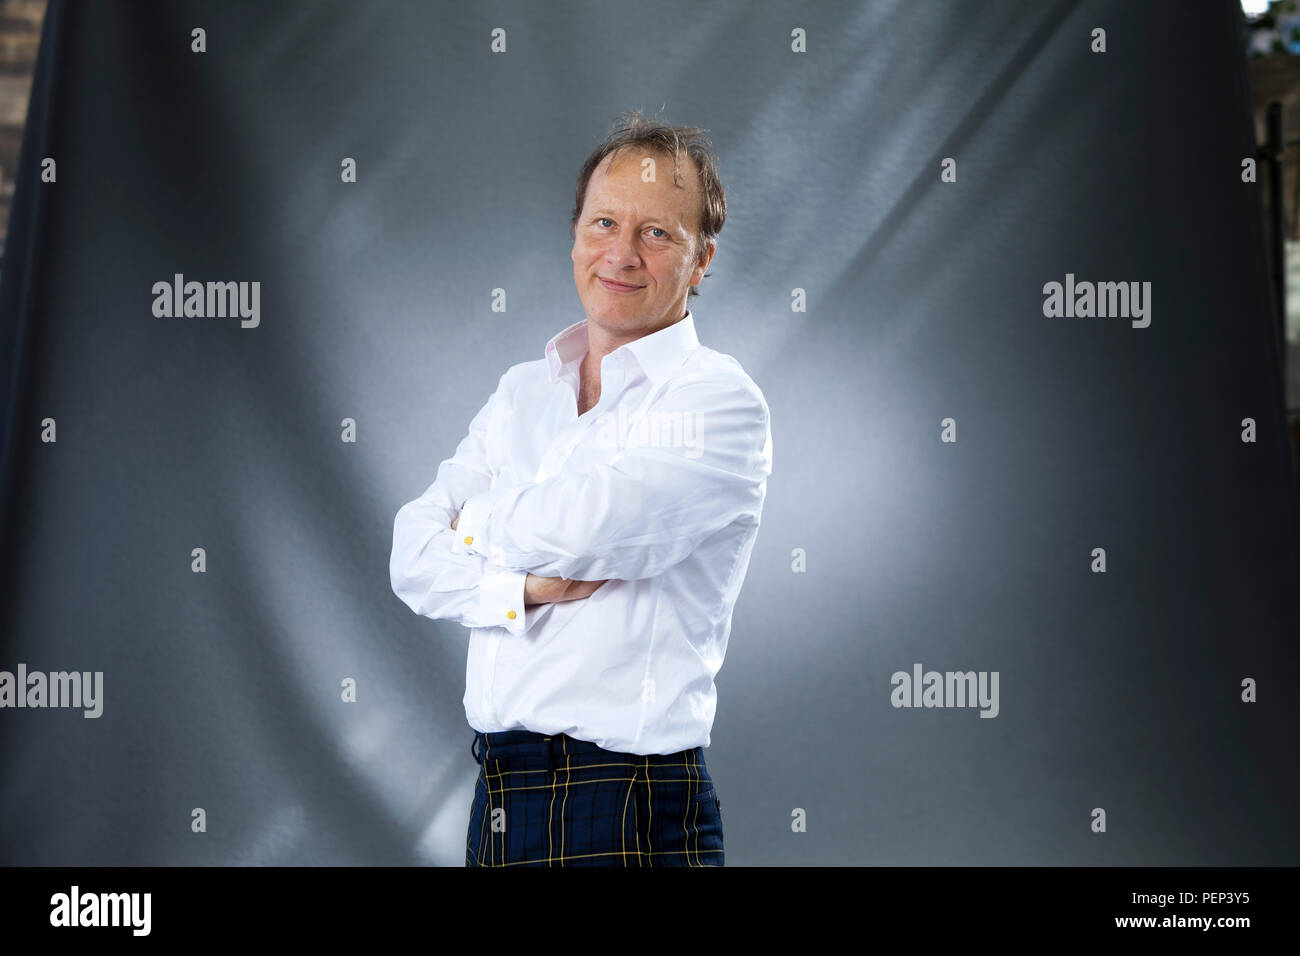 Edinburgh, UK. 16th August, 2018. Paul Kenyon, BAFTA-winning journalist and author who made his name confronting criminals in his own prime time TV show on BBC1. Pictured at the Edinburgh International Book Festival. Edinburgh, Scotland.  Picture by Gary Doak / Alamy Live News - Stock Image